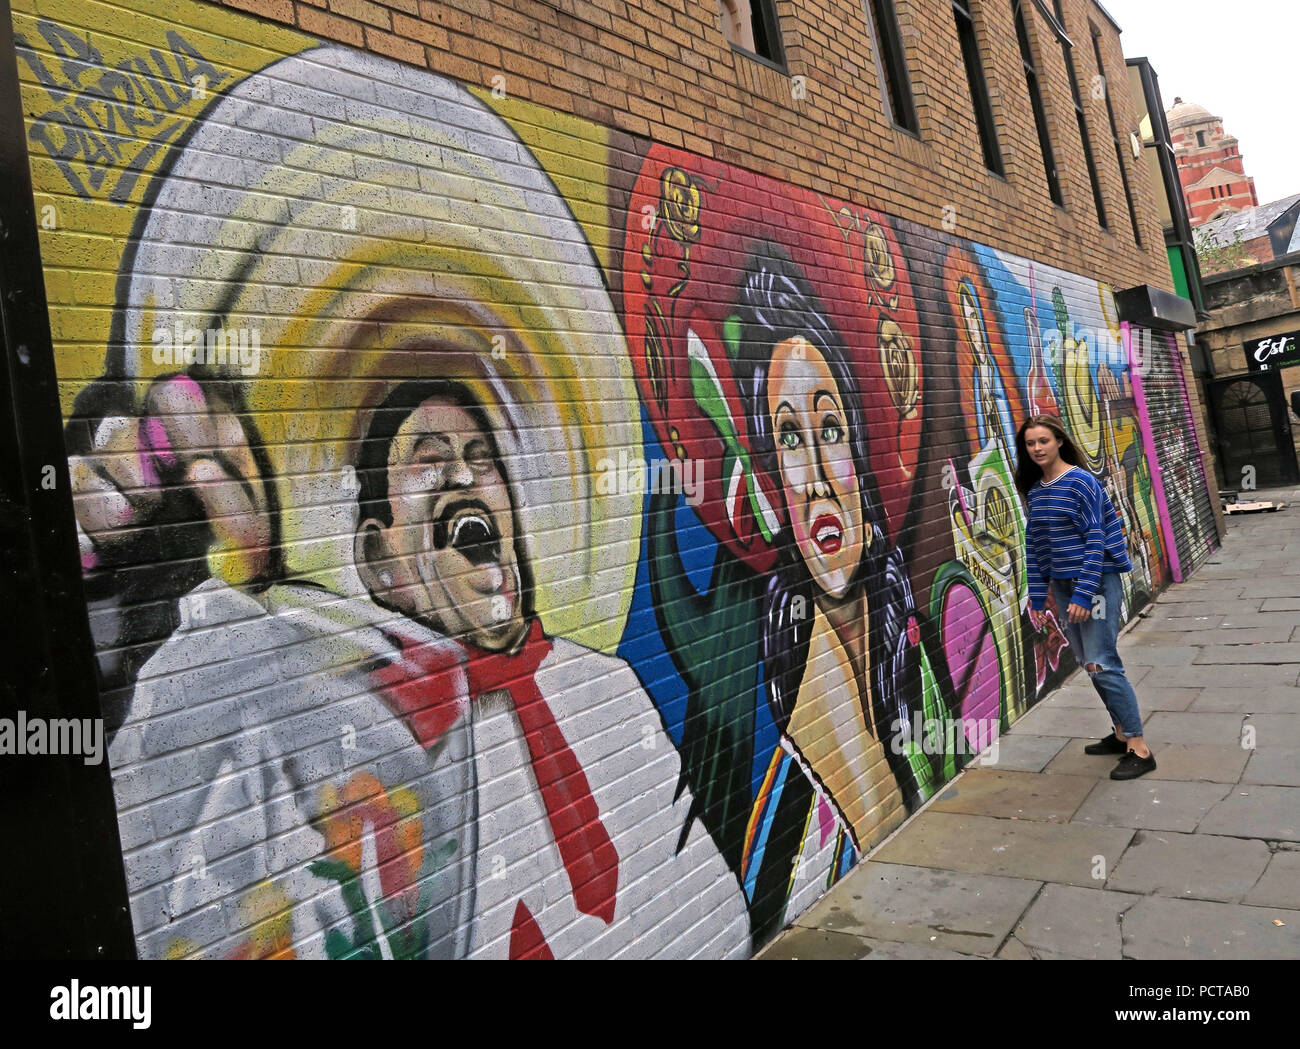 Mexican La Parrilla artwork mural on wall, Bold St, Liverpool, Merseyside, North West England, UK - Stock Image